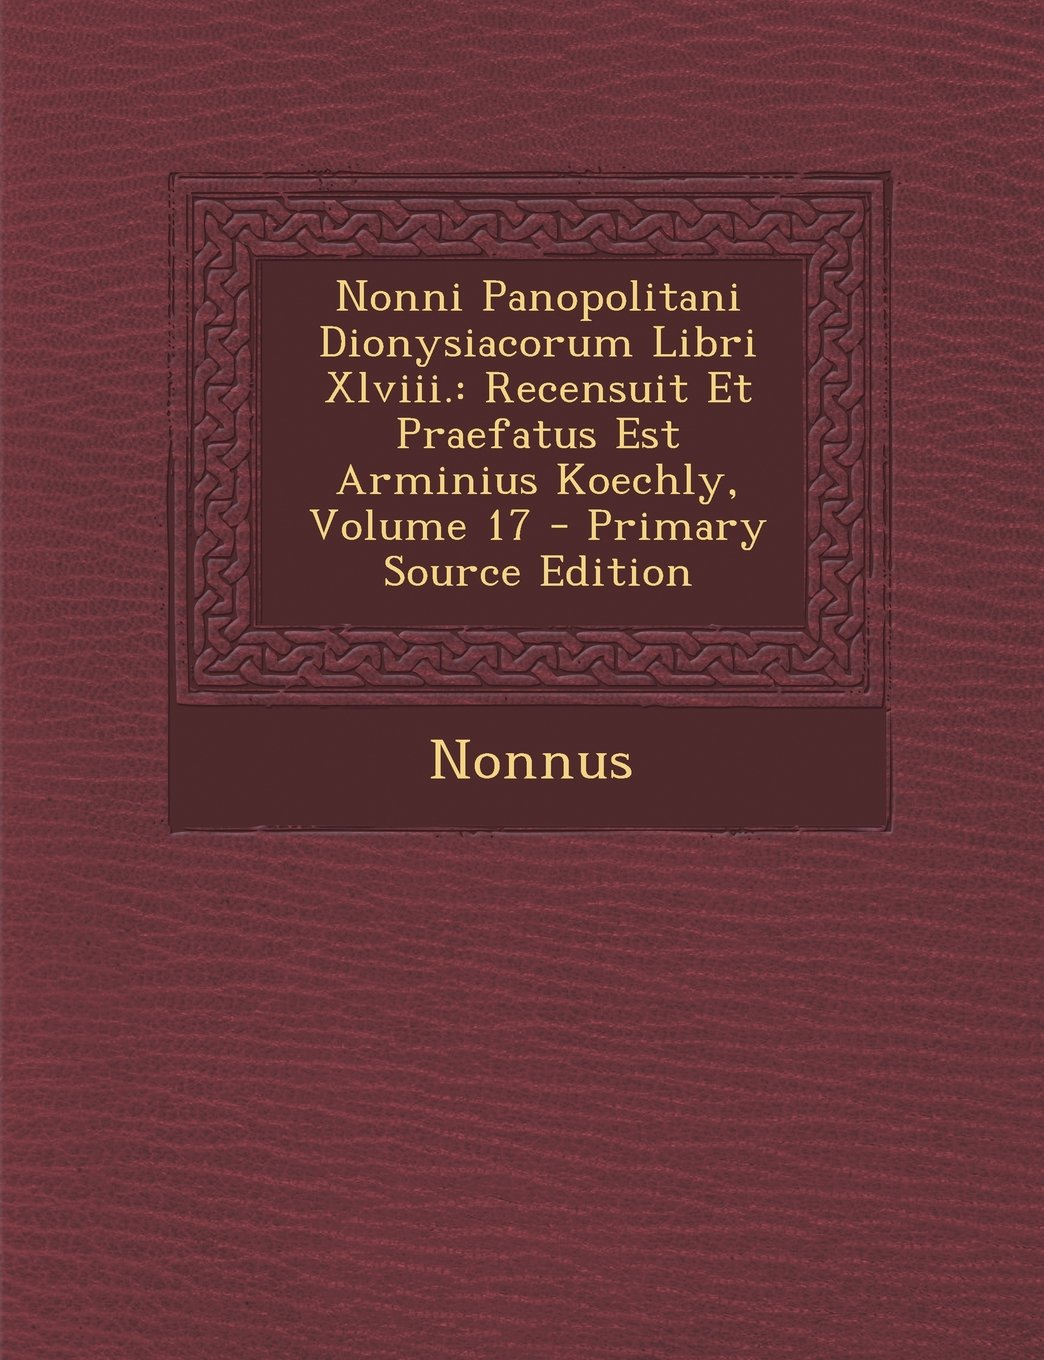 Read Online Nonni Panopolitani Dionysiacorum Libri XLVIII.: Recensuit Et Praefatus Est Arminius Koechly, Volume 17 - Primary Source Edition (Ancient Greek Edition) PDF ePub fb2 book